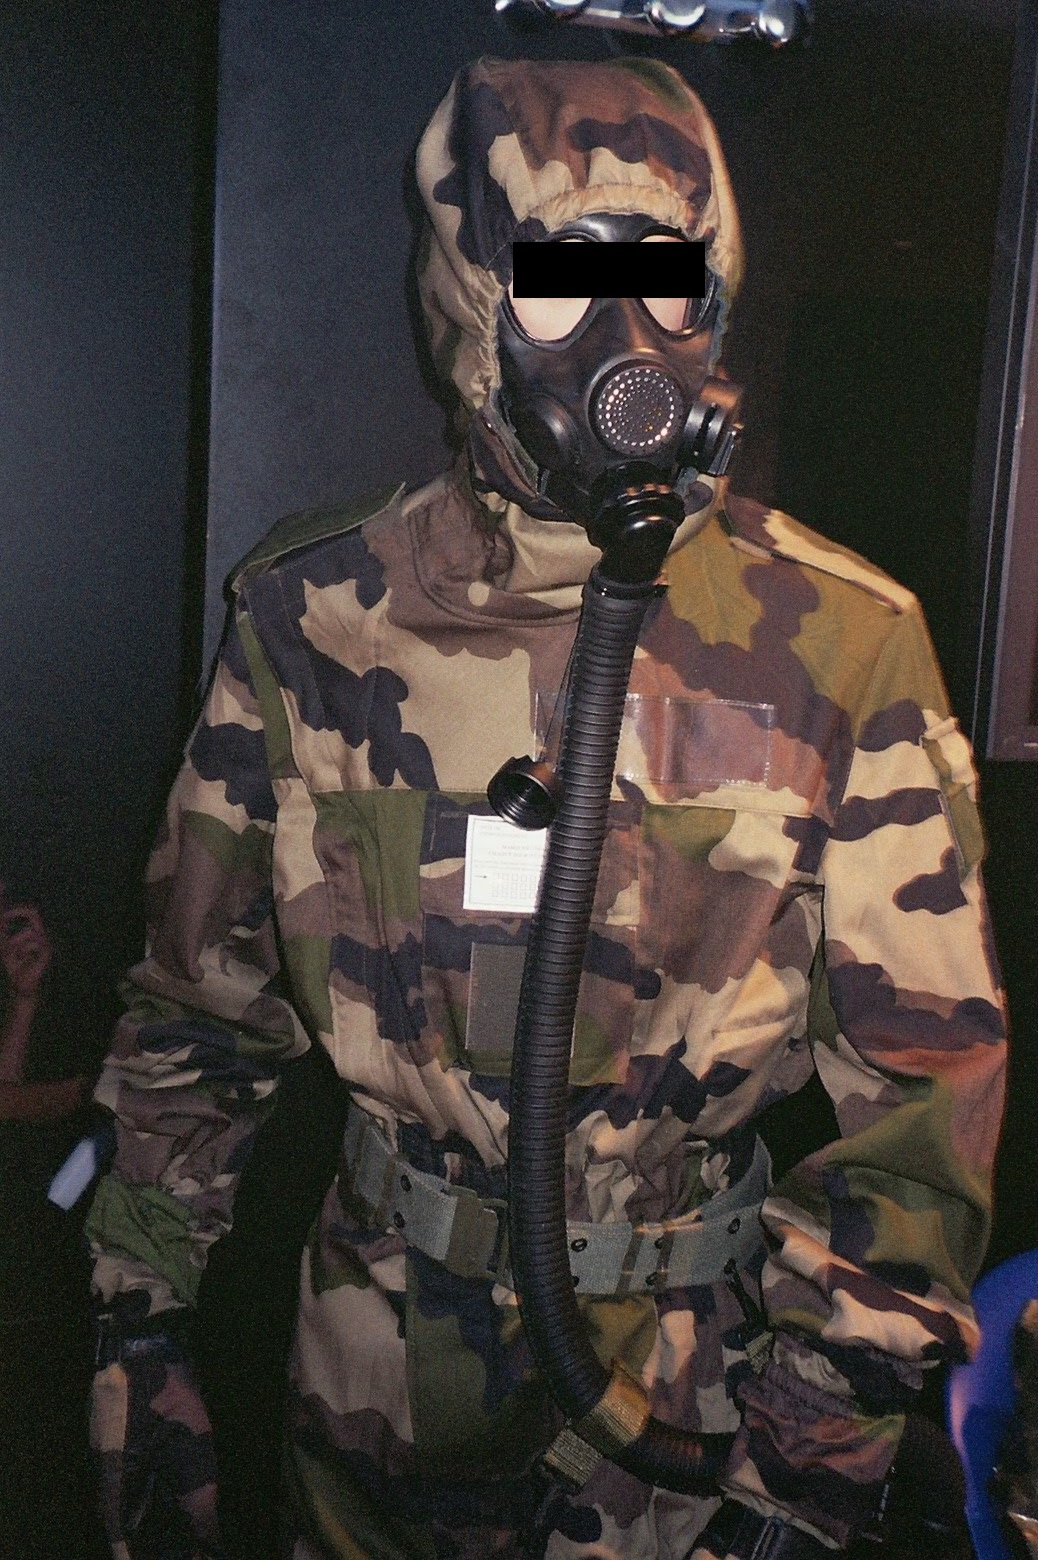 Gas_mask_501556_fh000007.png